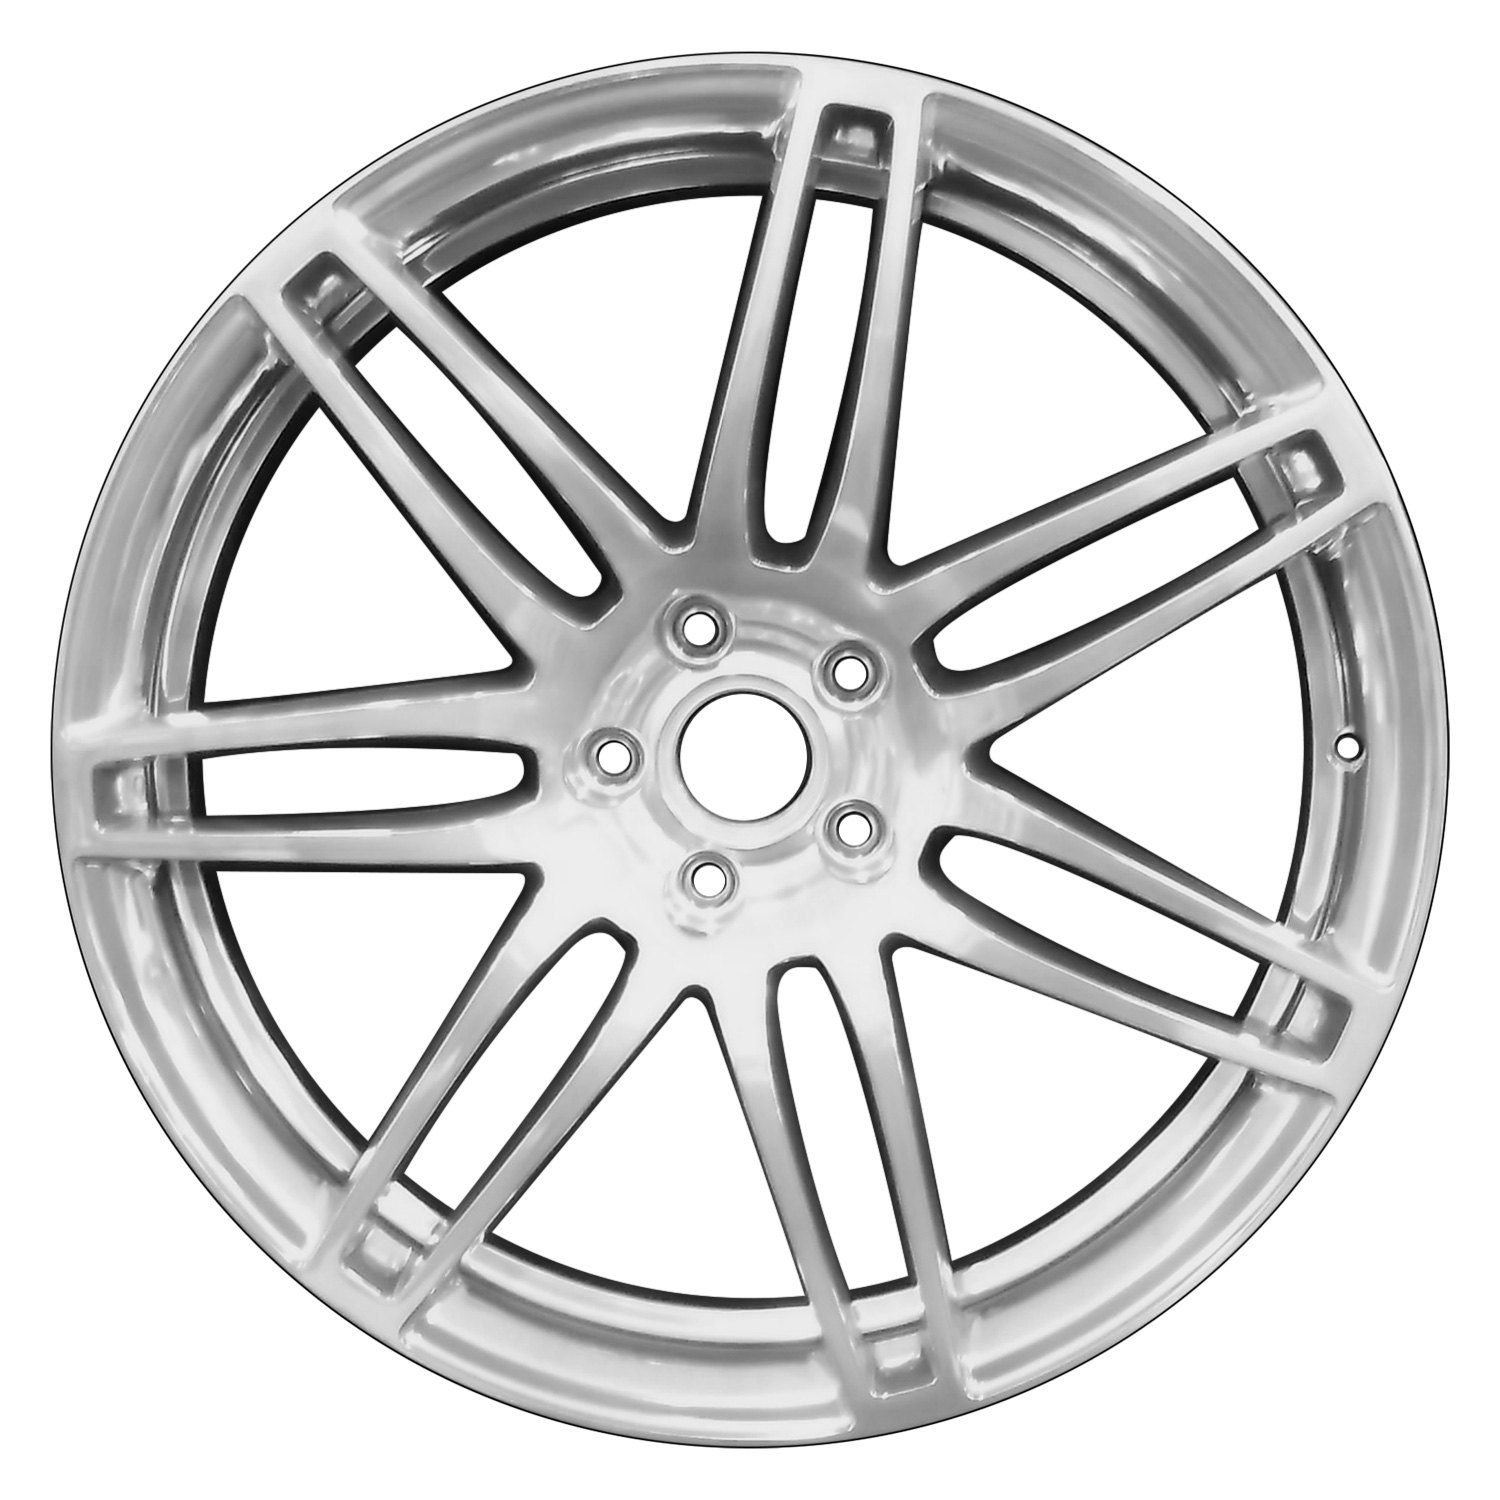 perfection wheel factory alloy wheels Ford Ranger Pedal Covers wheel 19 refinished rear 14 spokes medium charcoal machined bright factory alloy wheelperfection wheel 21 refinished 10 spokes dark sparkle